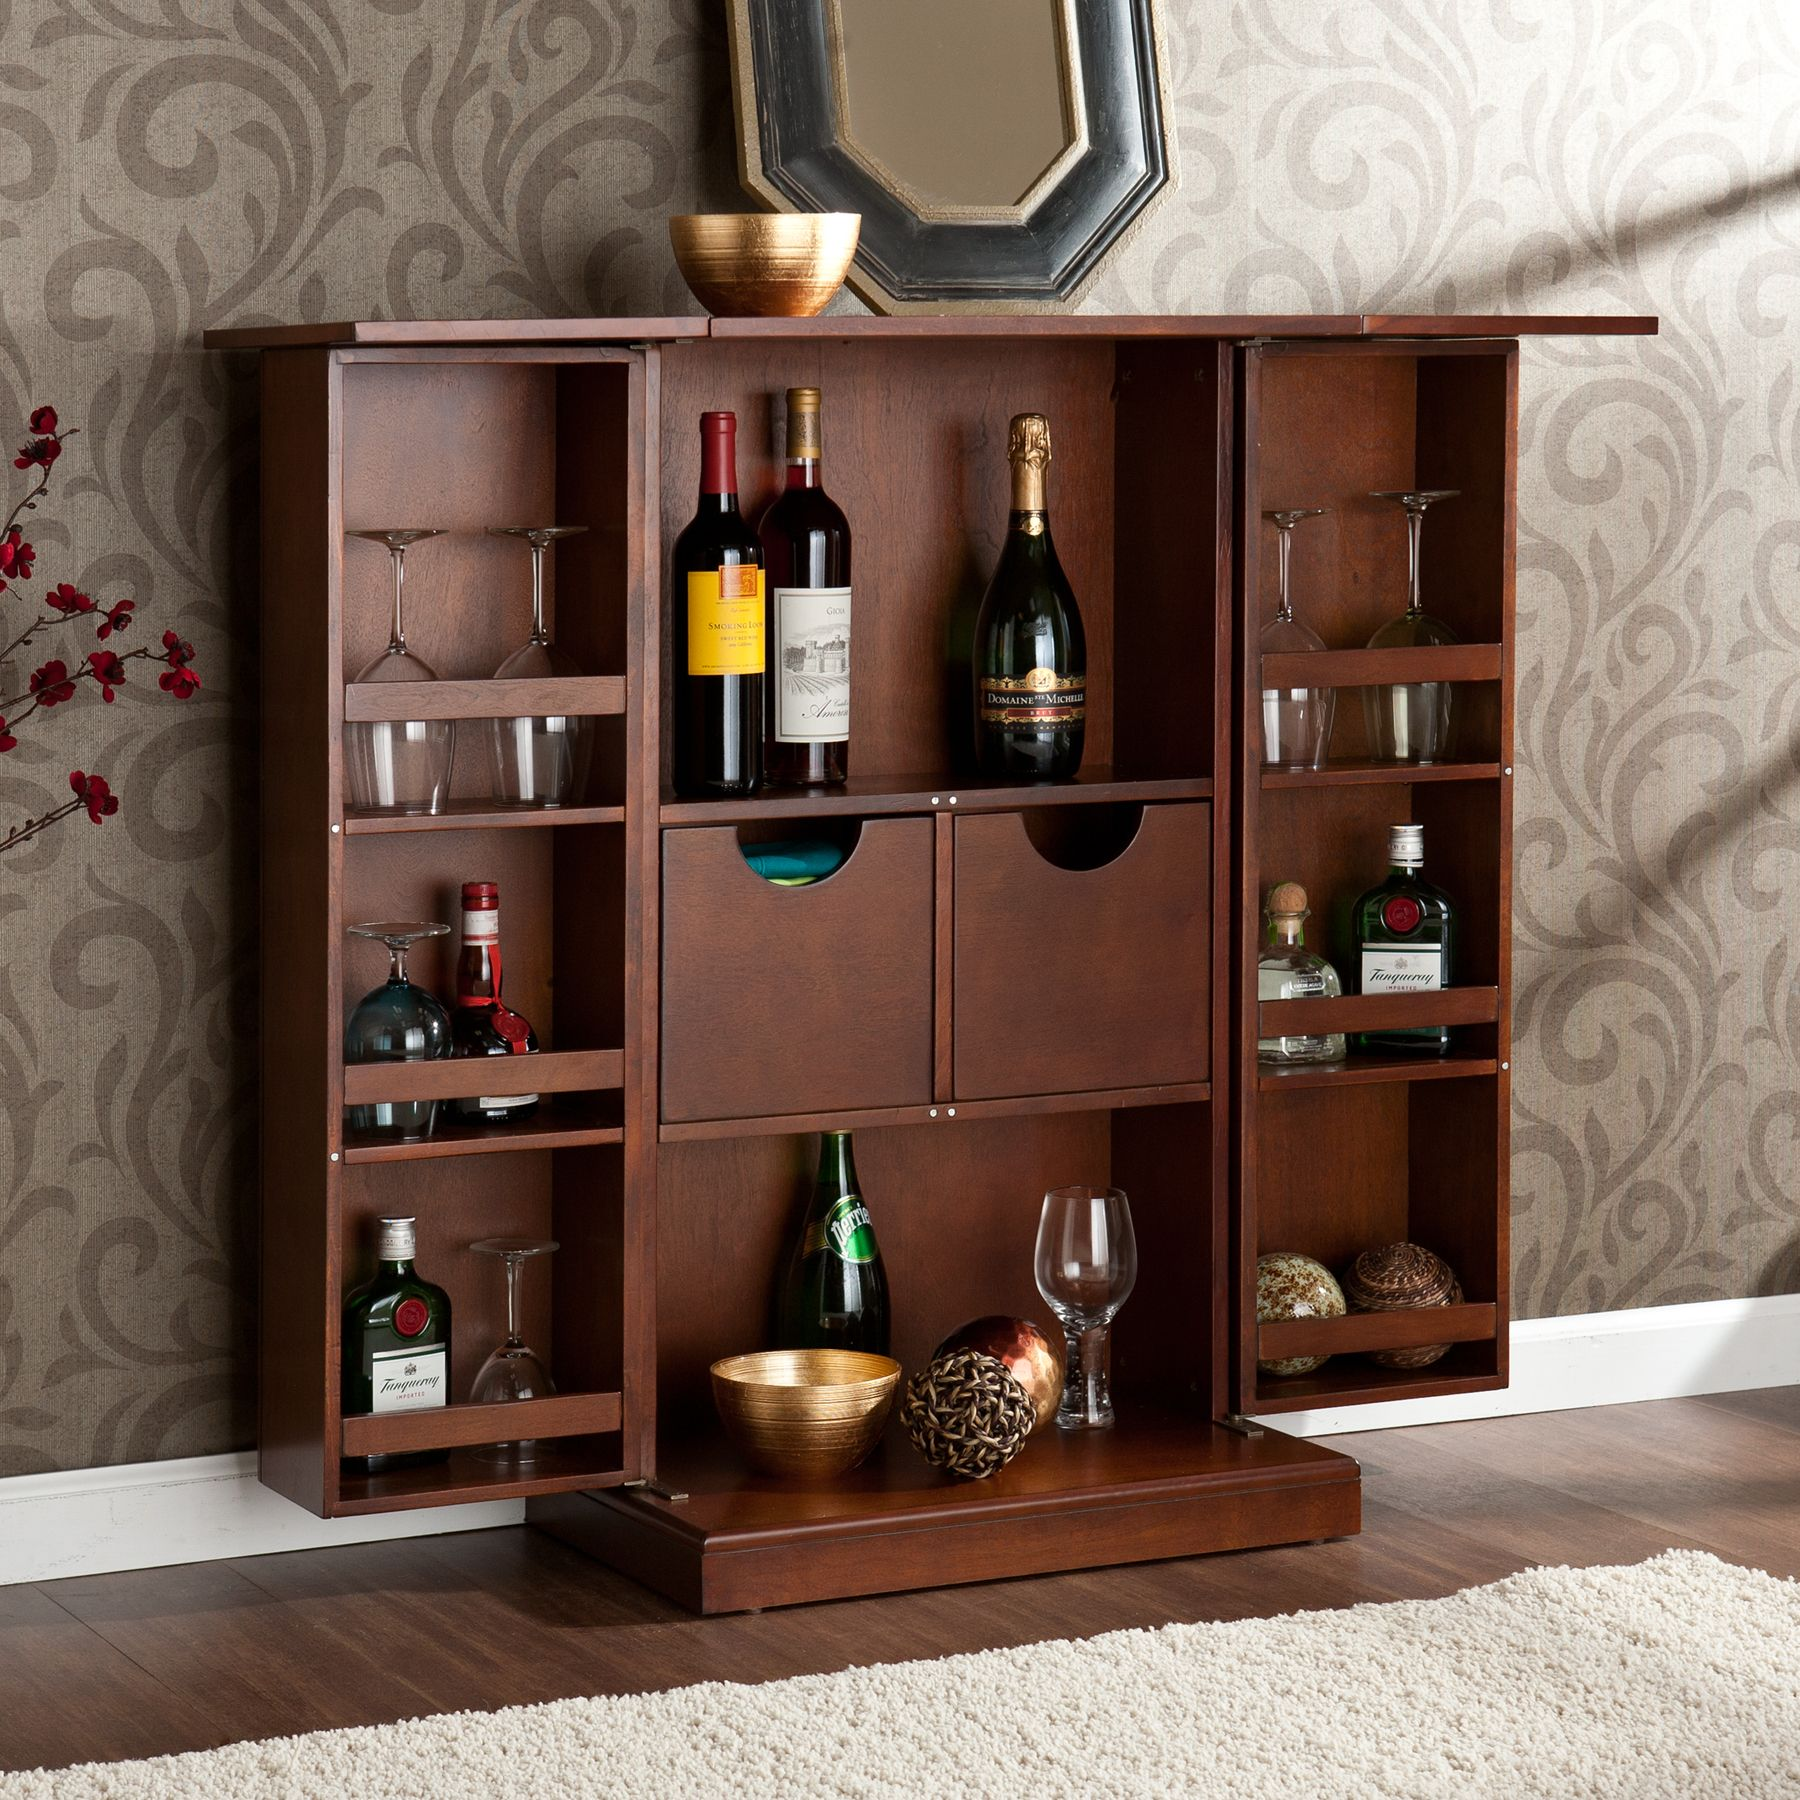 Delightful Mini Bar Cabinet Design Ideas   Http://www.thedomainfairy.com/